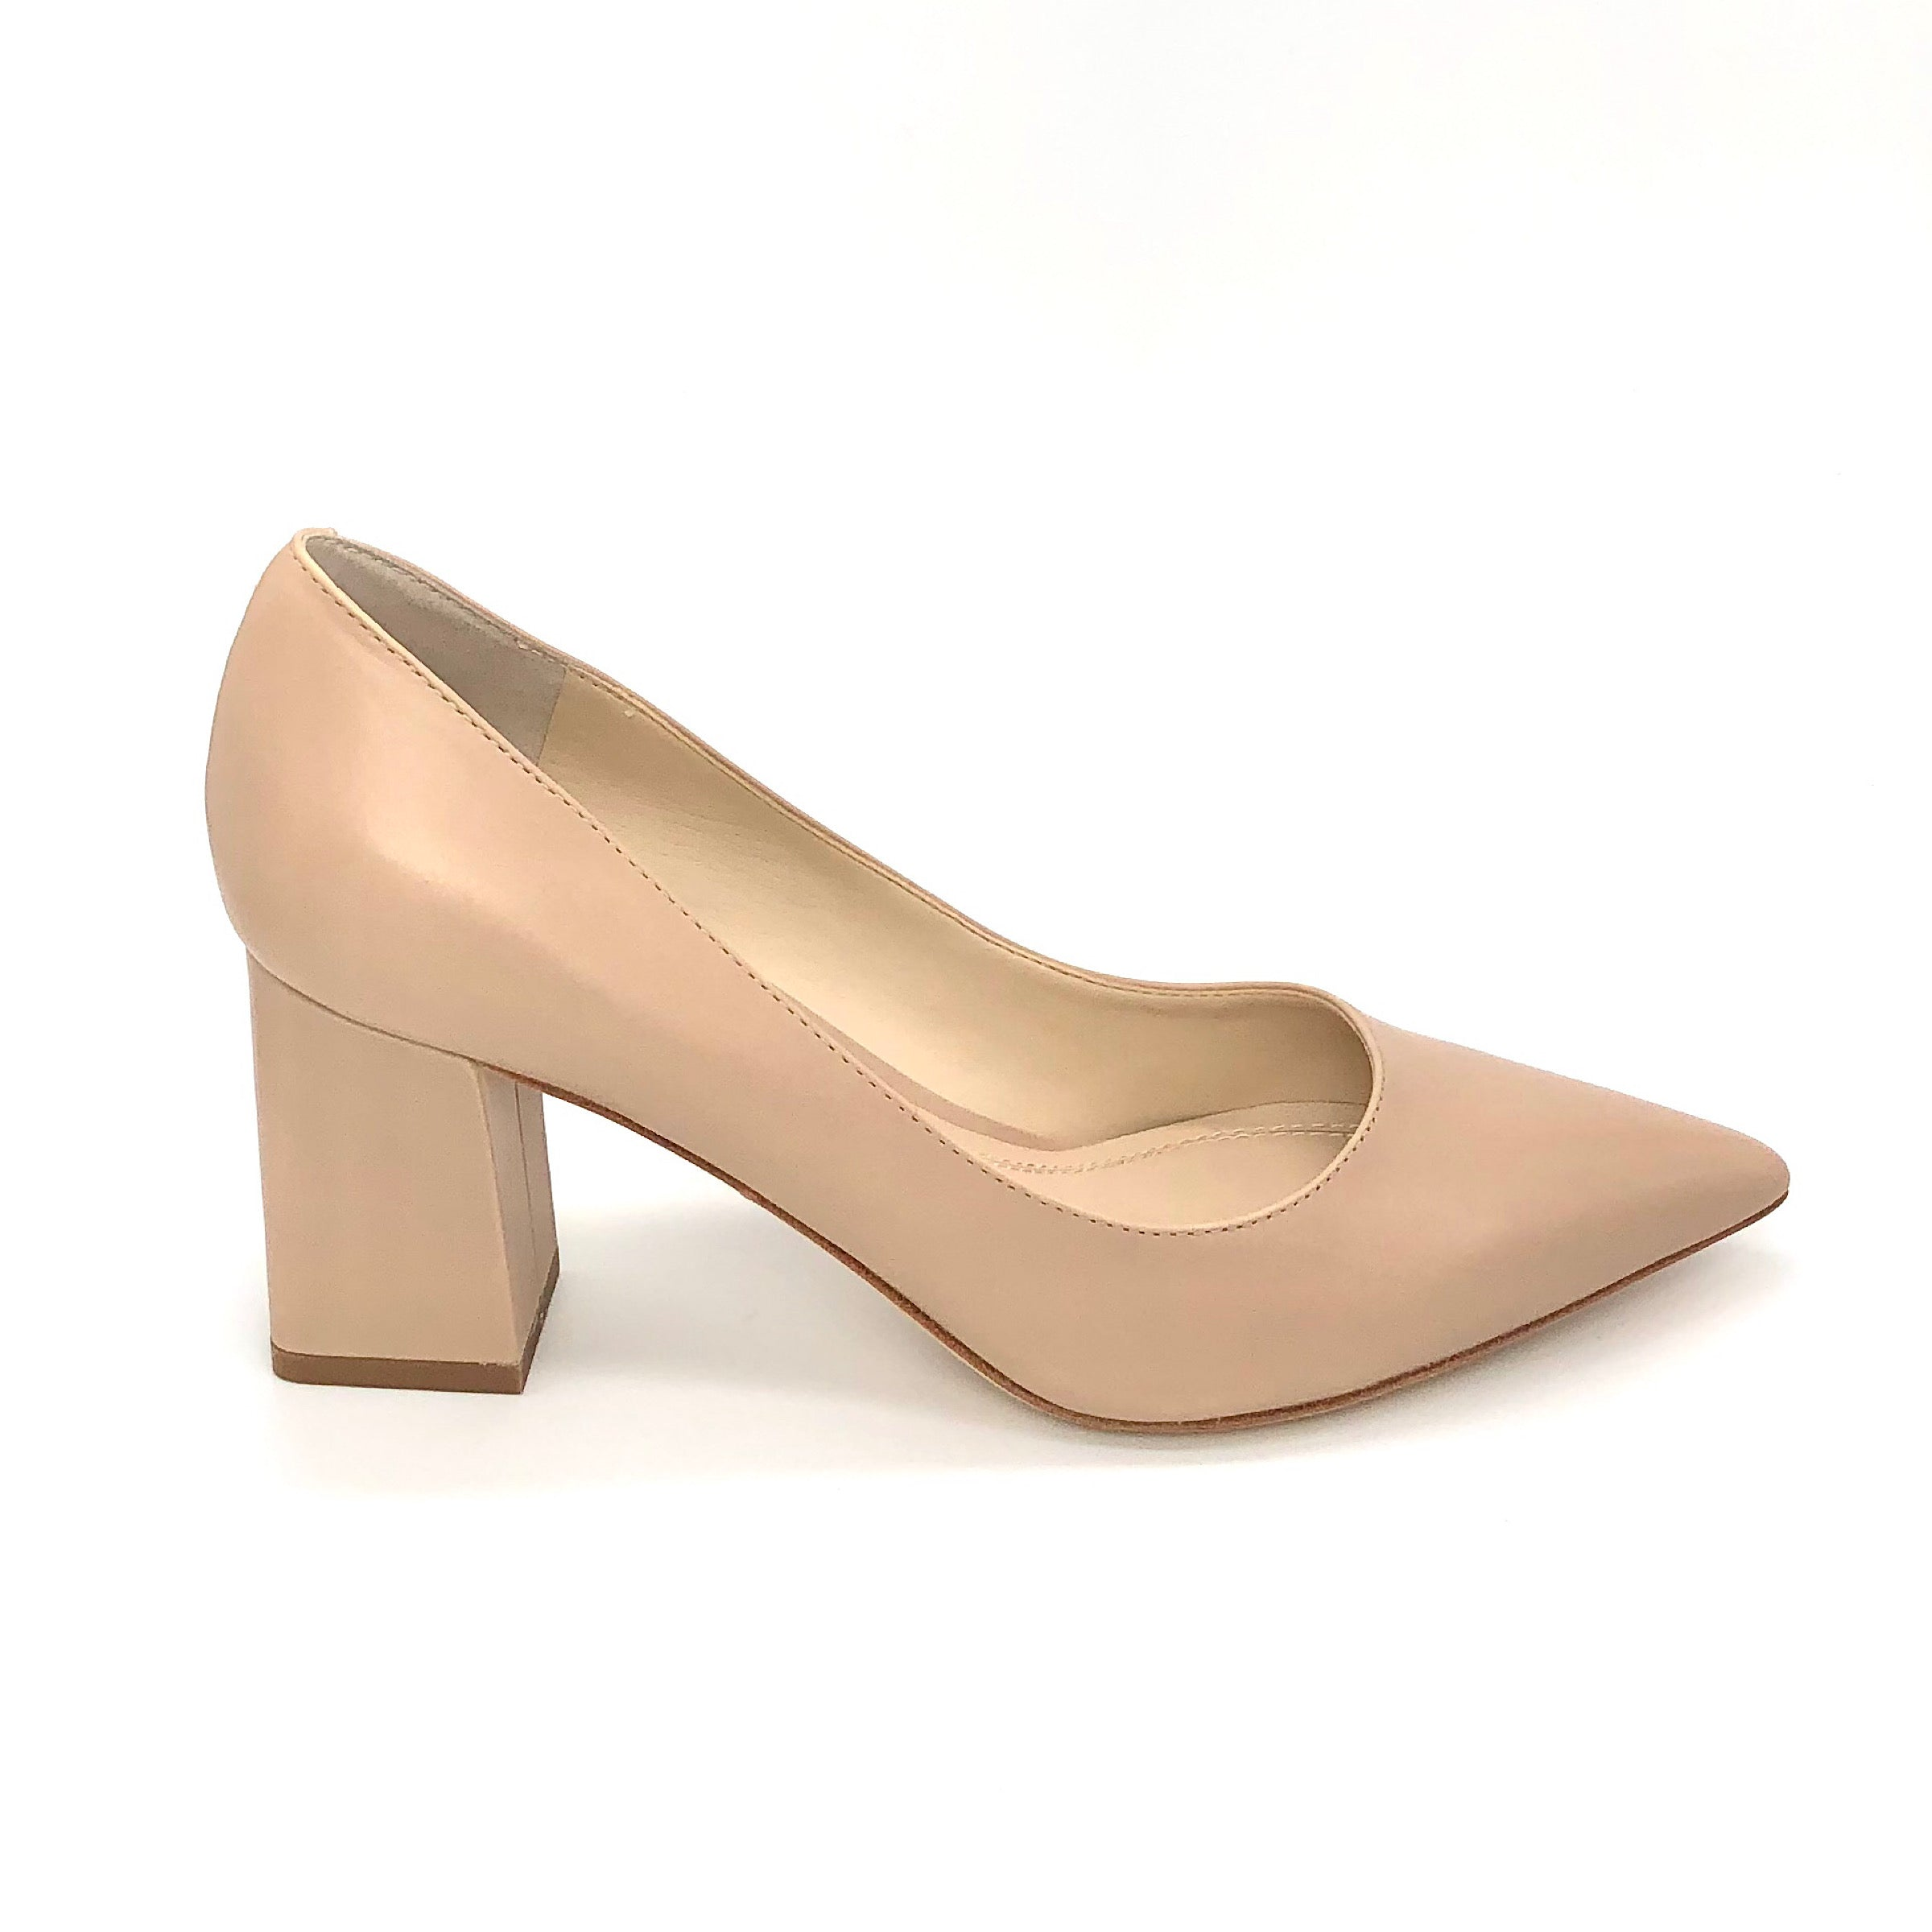 The Block Heel Pointed Pump in Light Natural